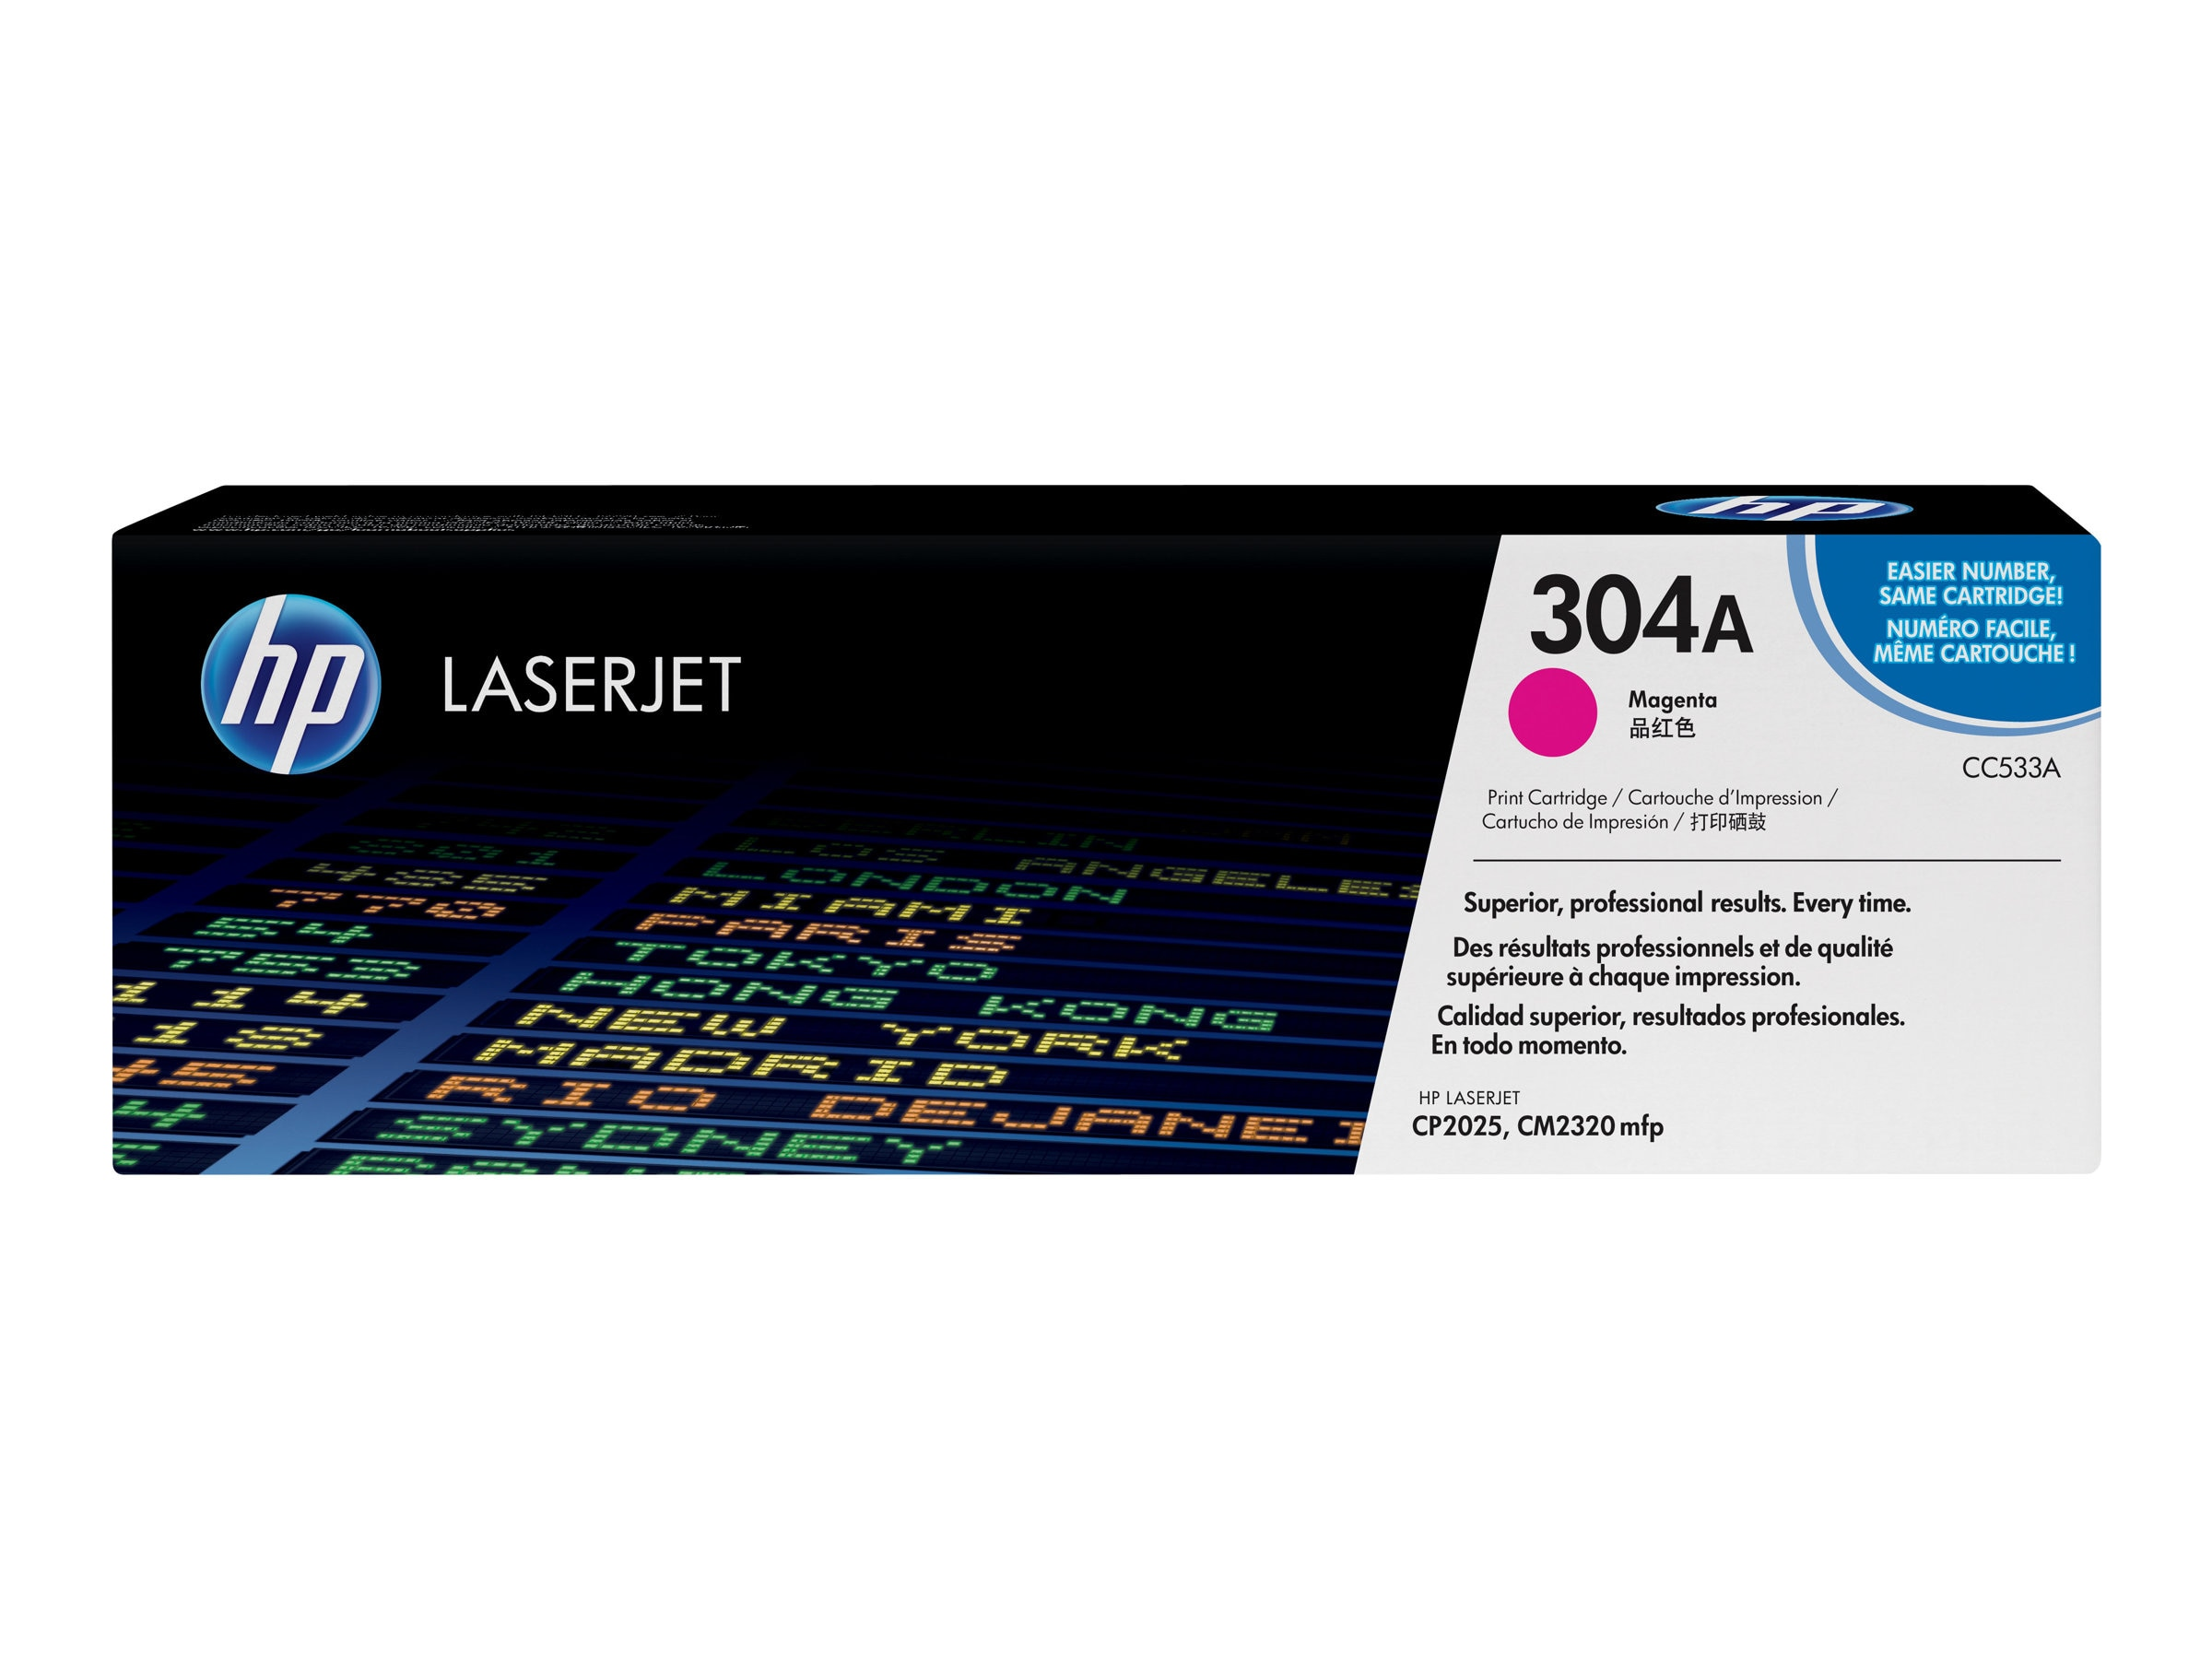 HP 304A (CC533A) Magenta Original LaserJet Toner Cartridge for HP Color LaserJet CP2025 & CM2320 MFP